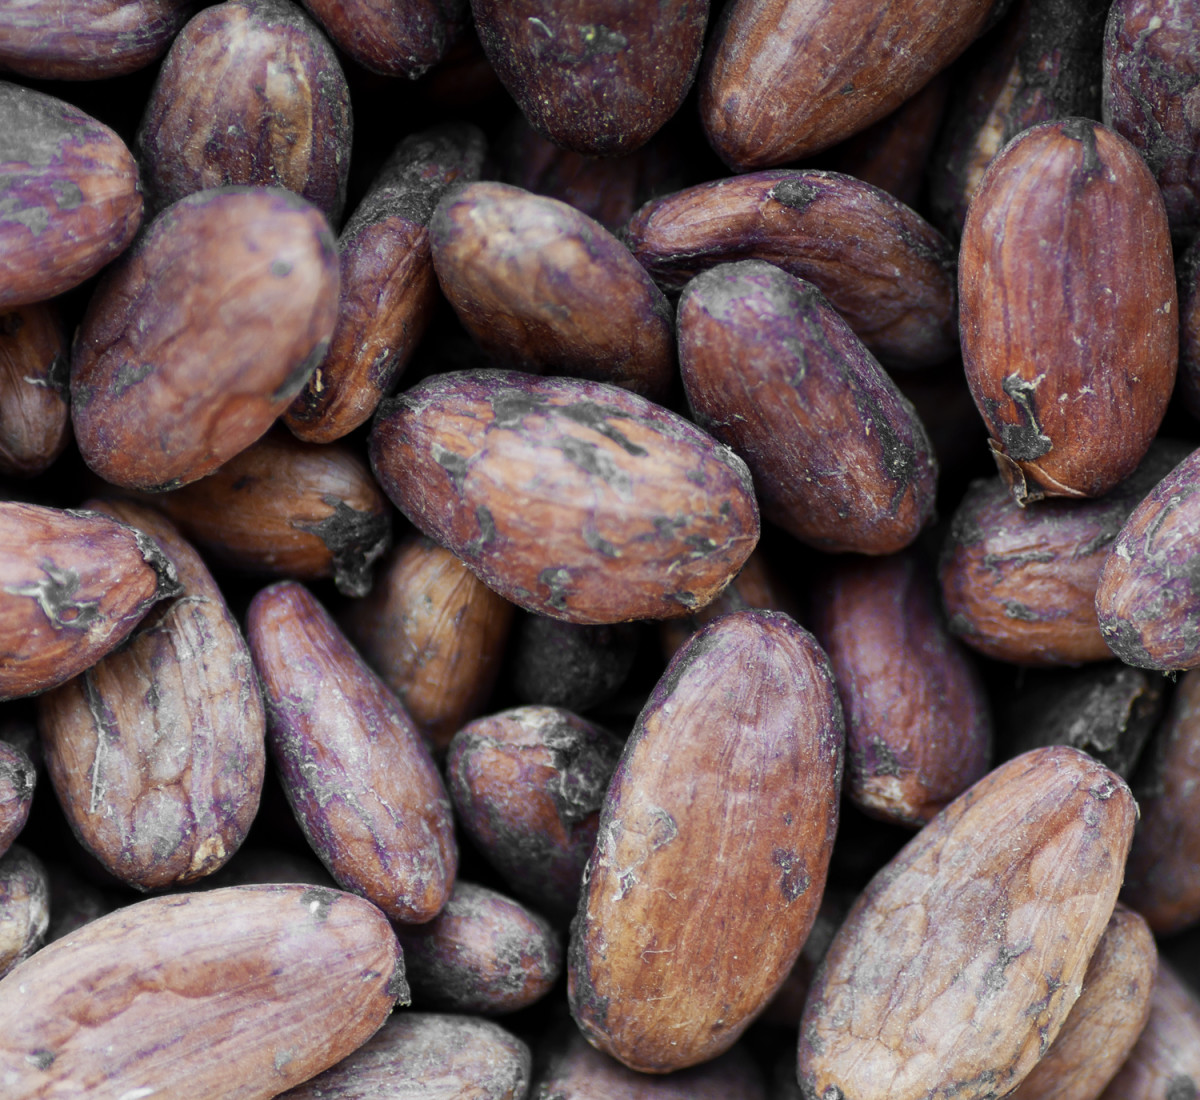 Raw Cacao beans from Copán.